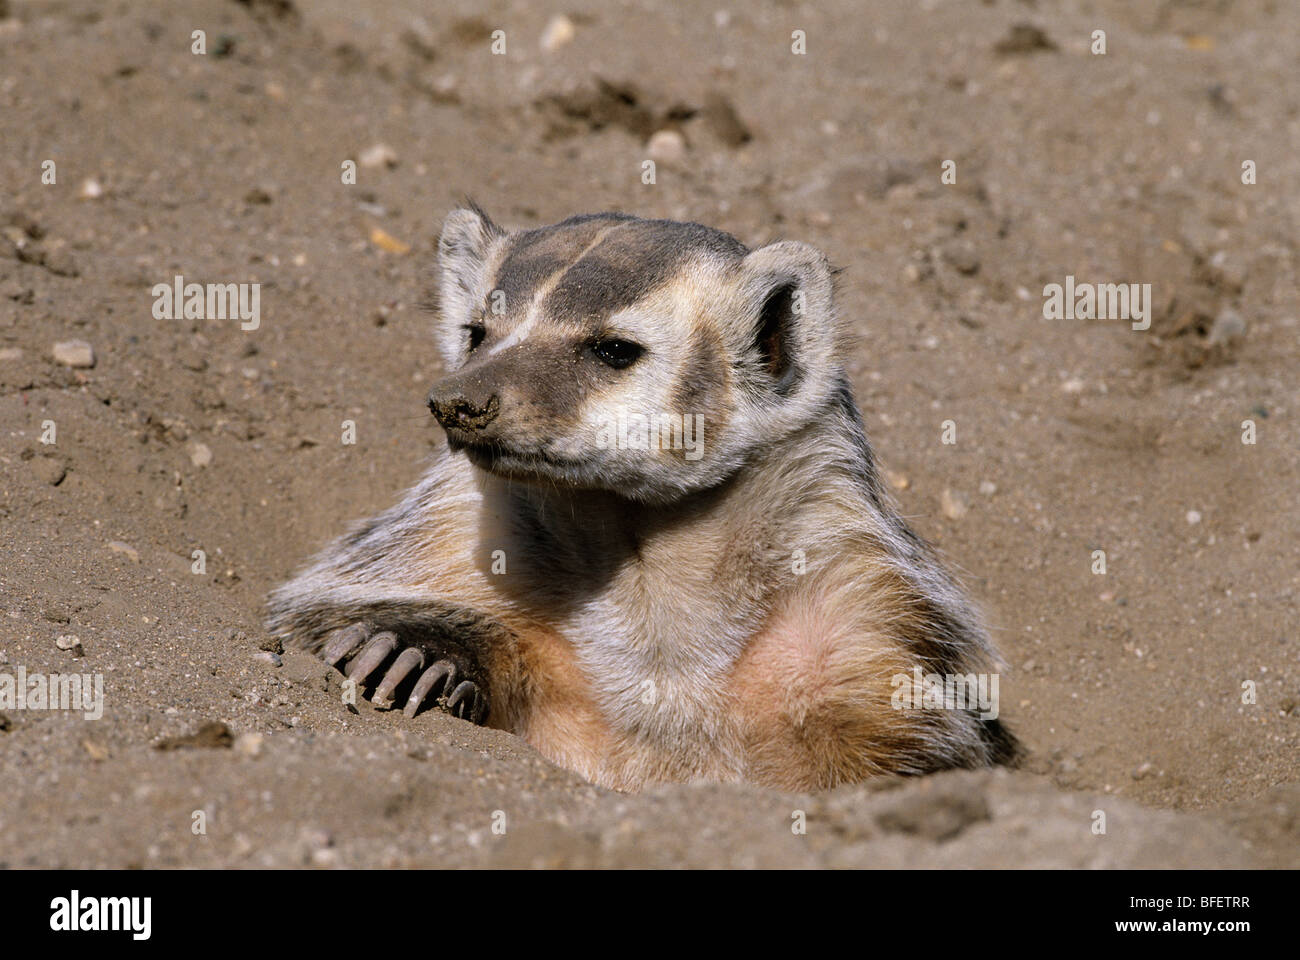 Badger (Taxidea taxus) at burrow near Maple Creek, Saskatchewan, Canada - Stock Image